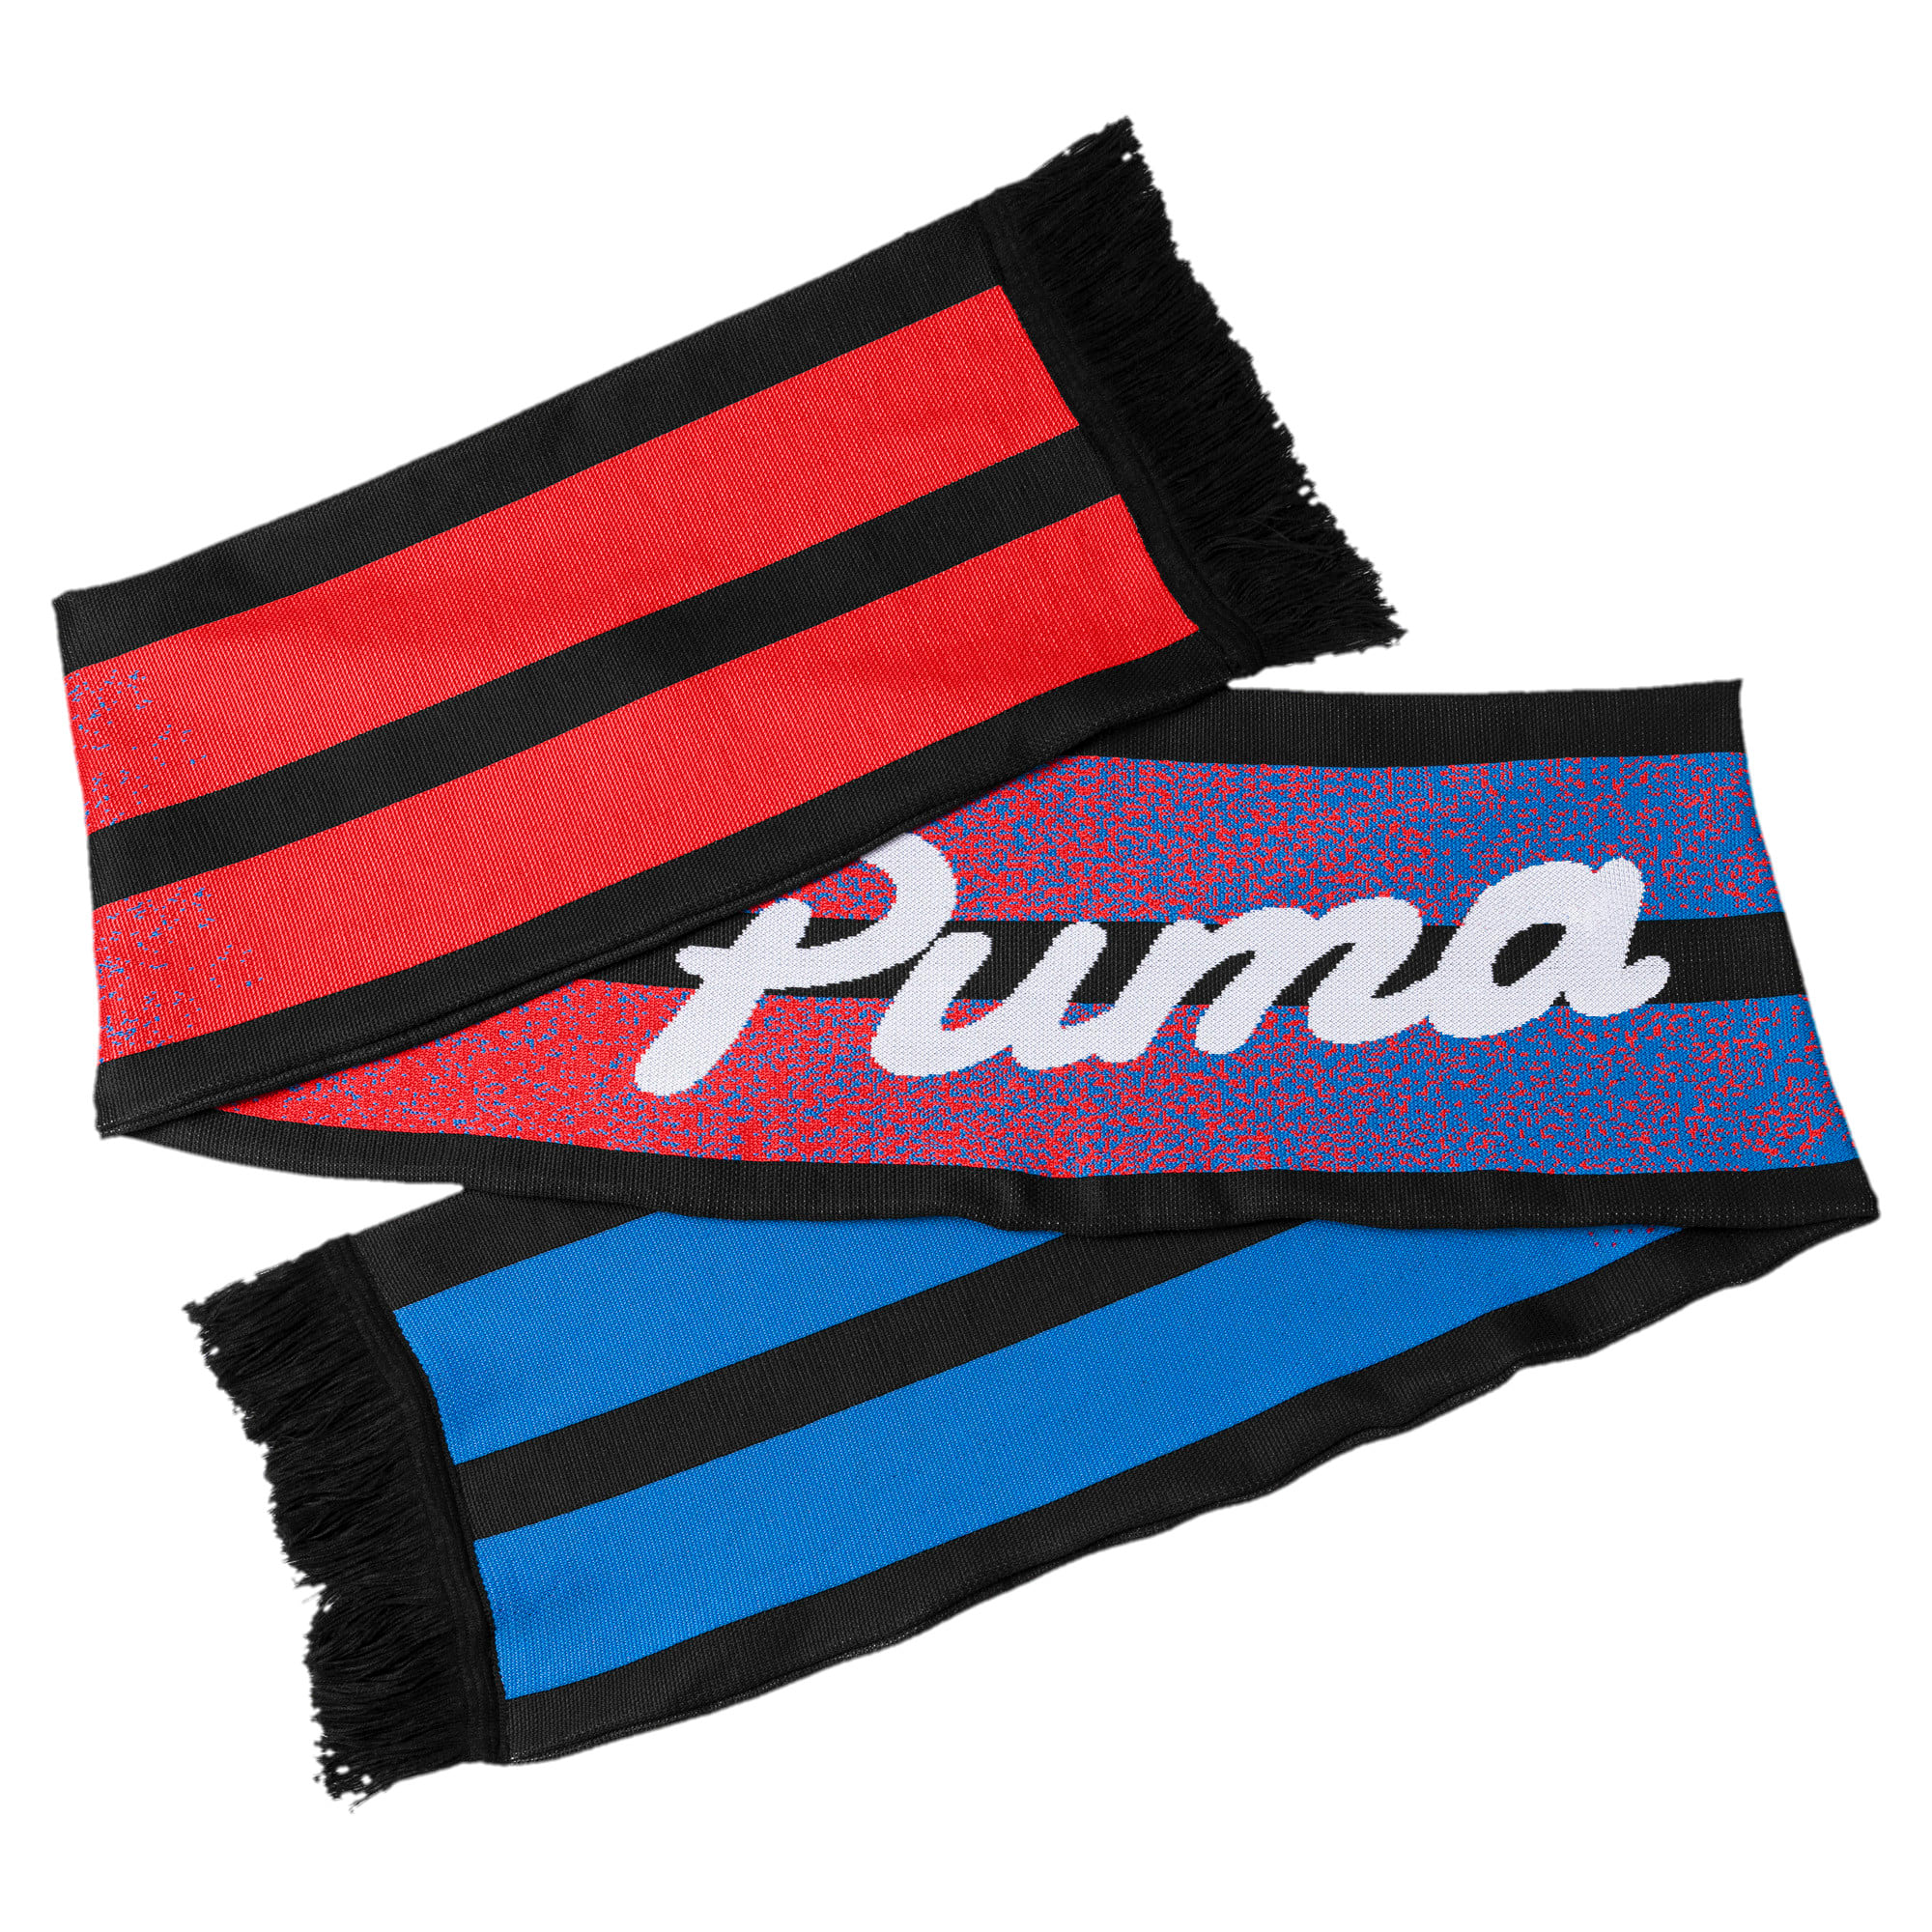 Thumbnail 2 of Acid Bleach Scarf, Puma Black-Poppy Red, medium